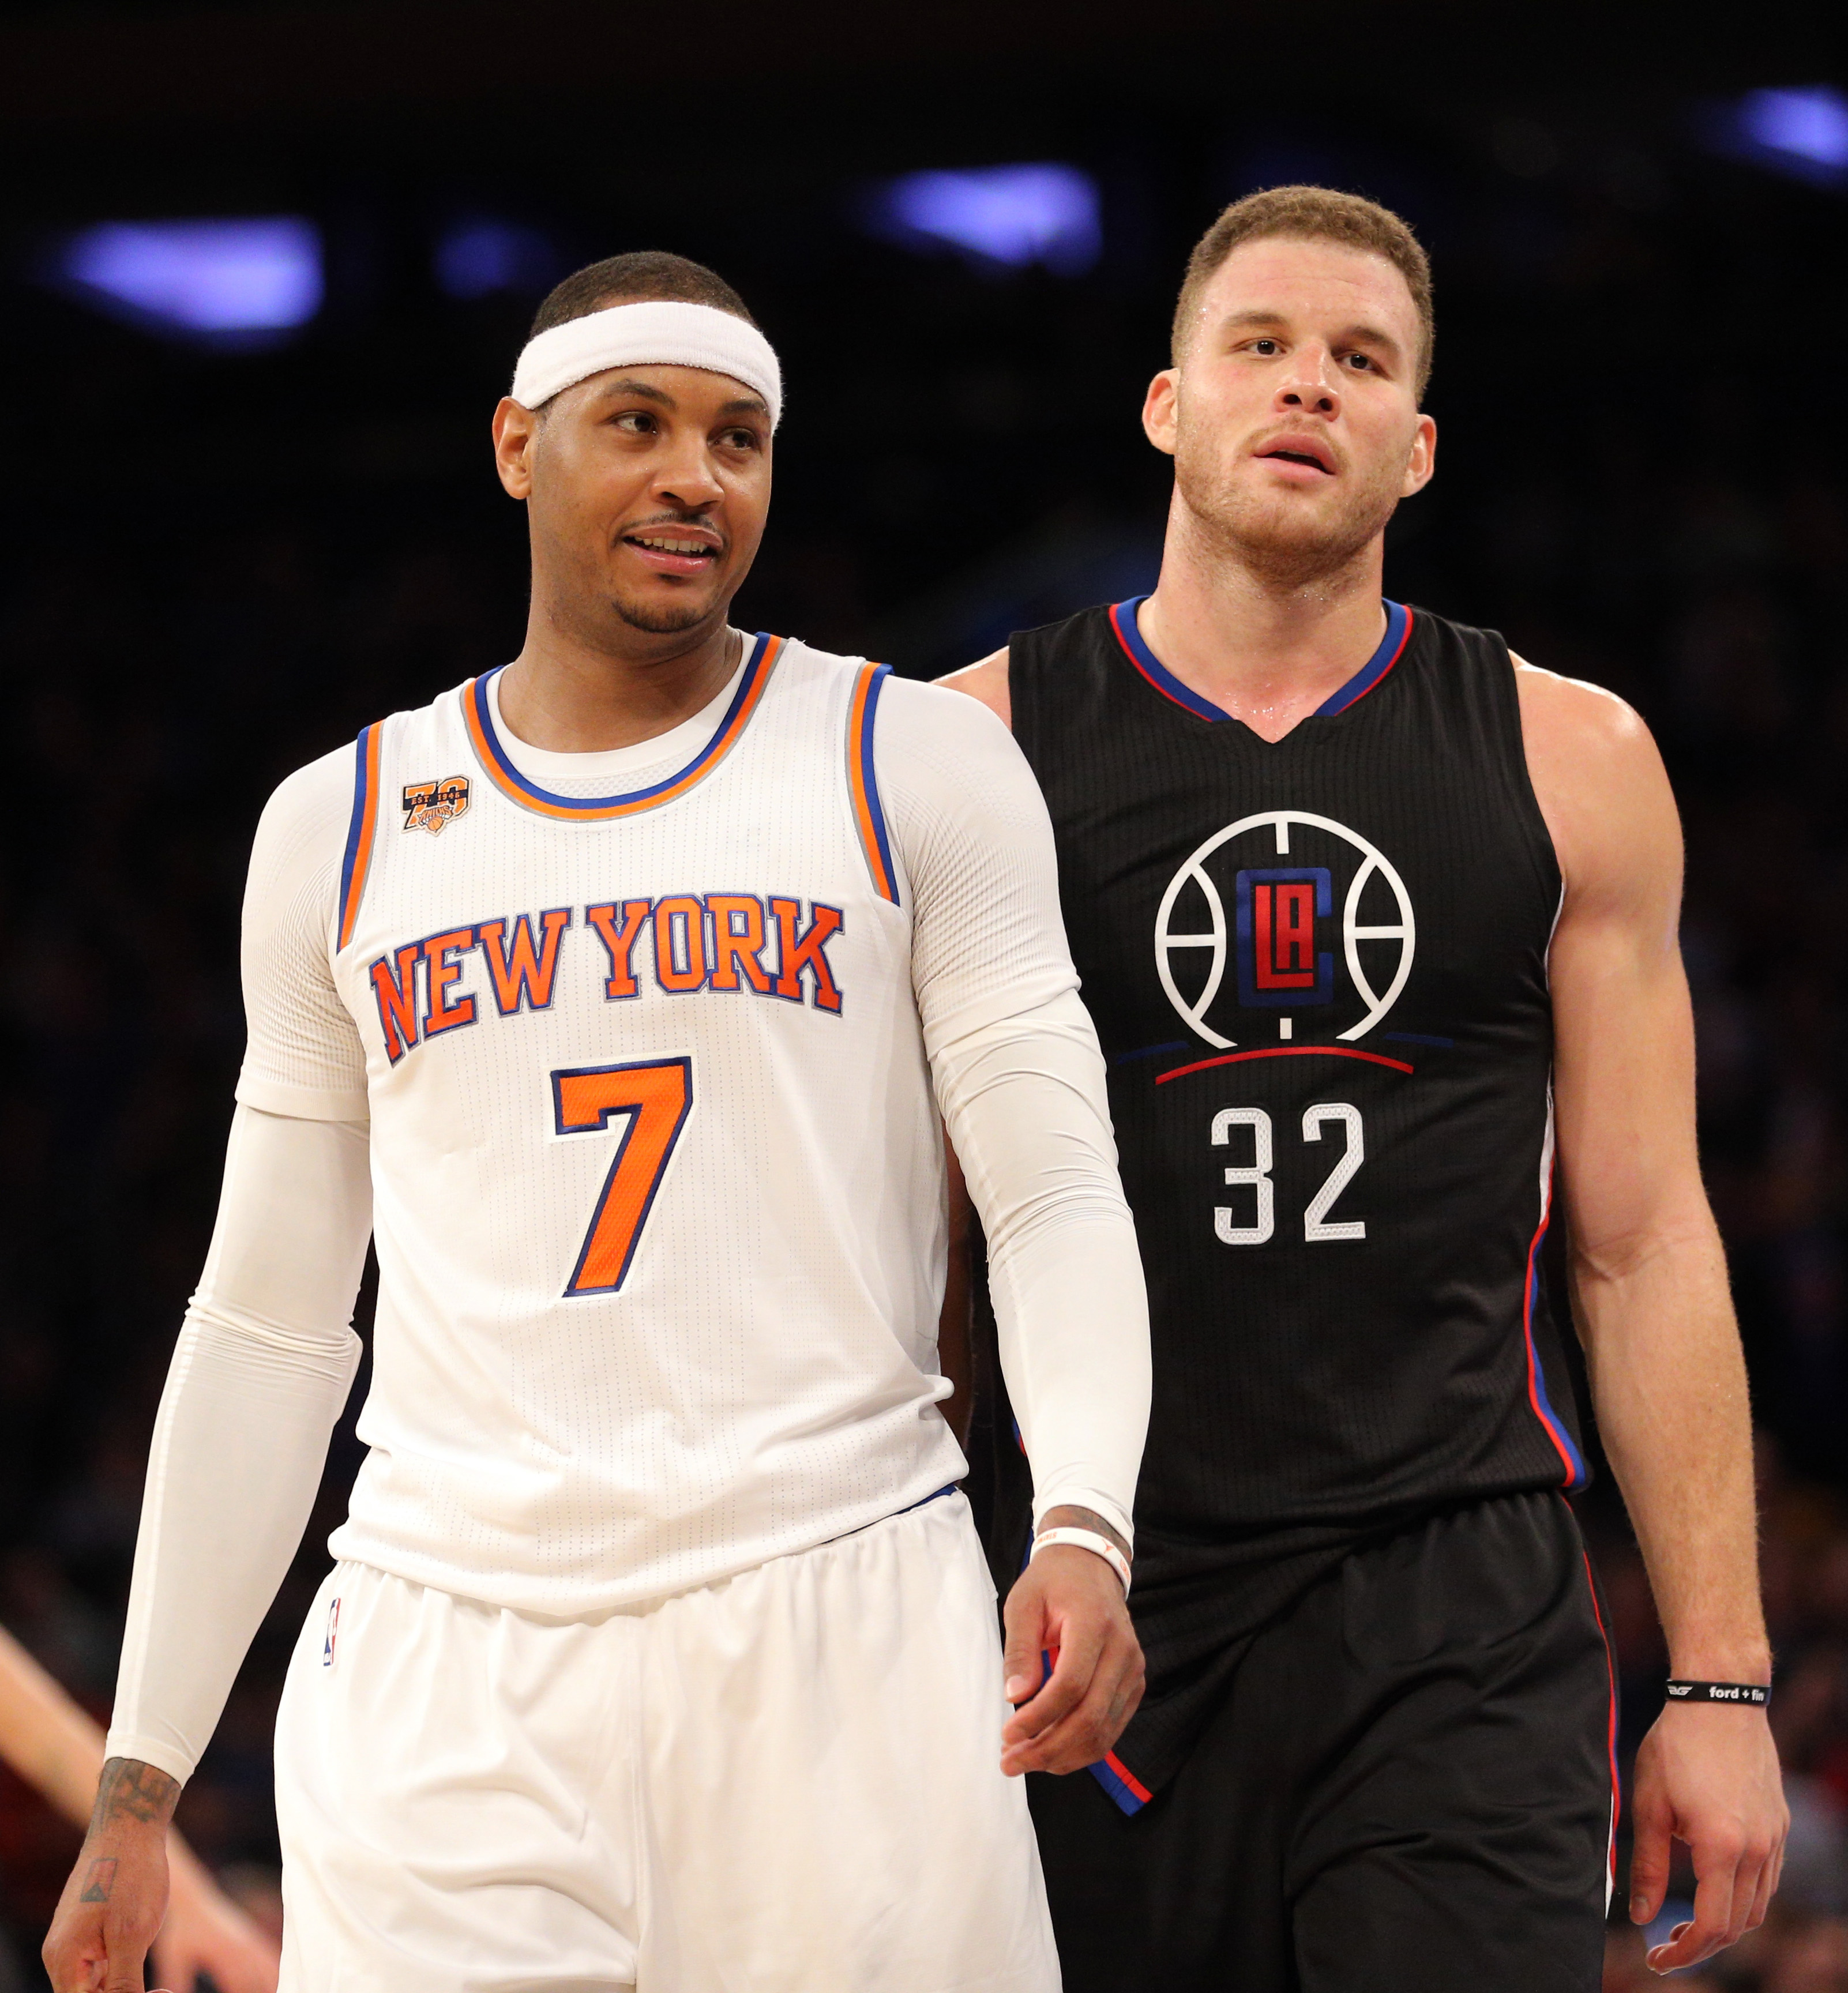 9866739-nba-los-angeles-clippers-at-new-york-knicks